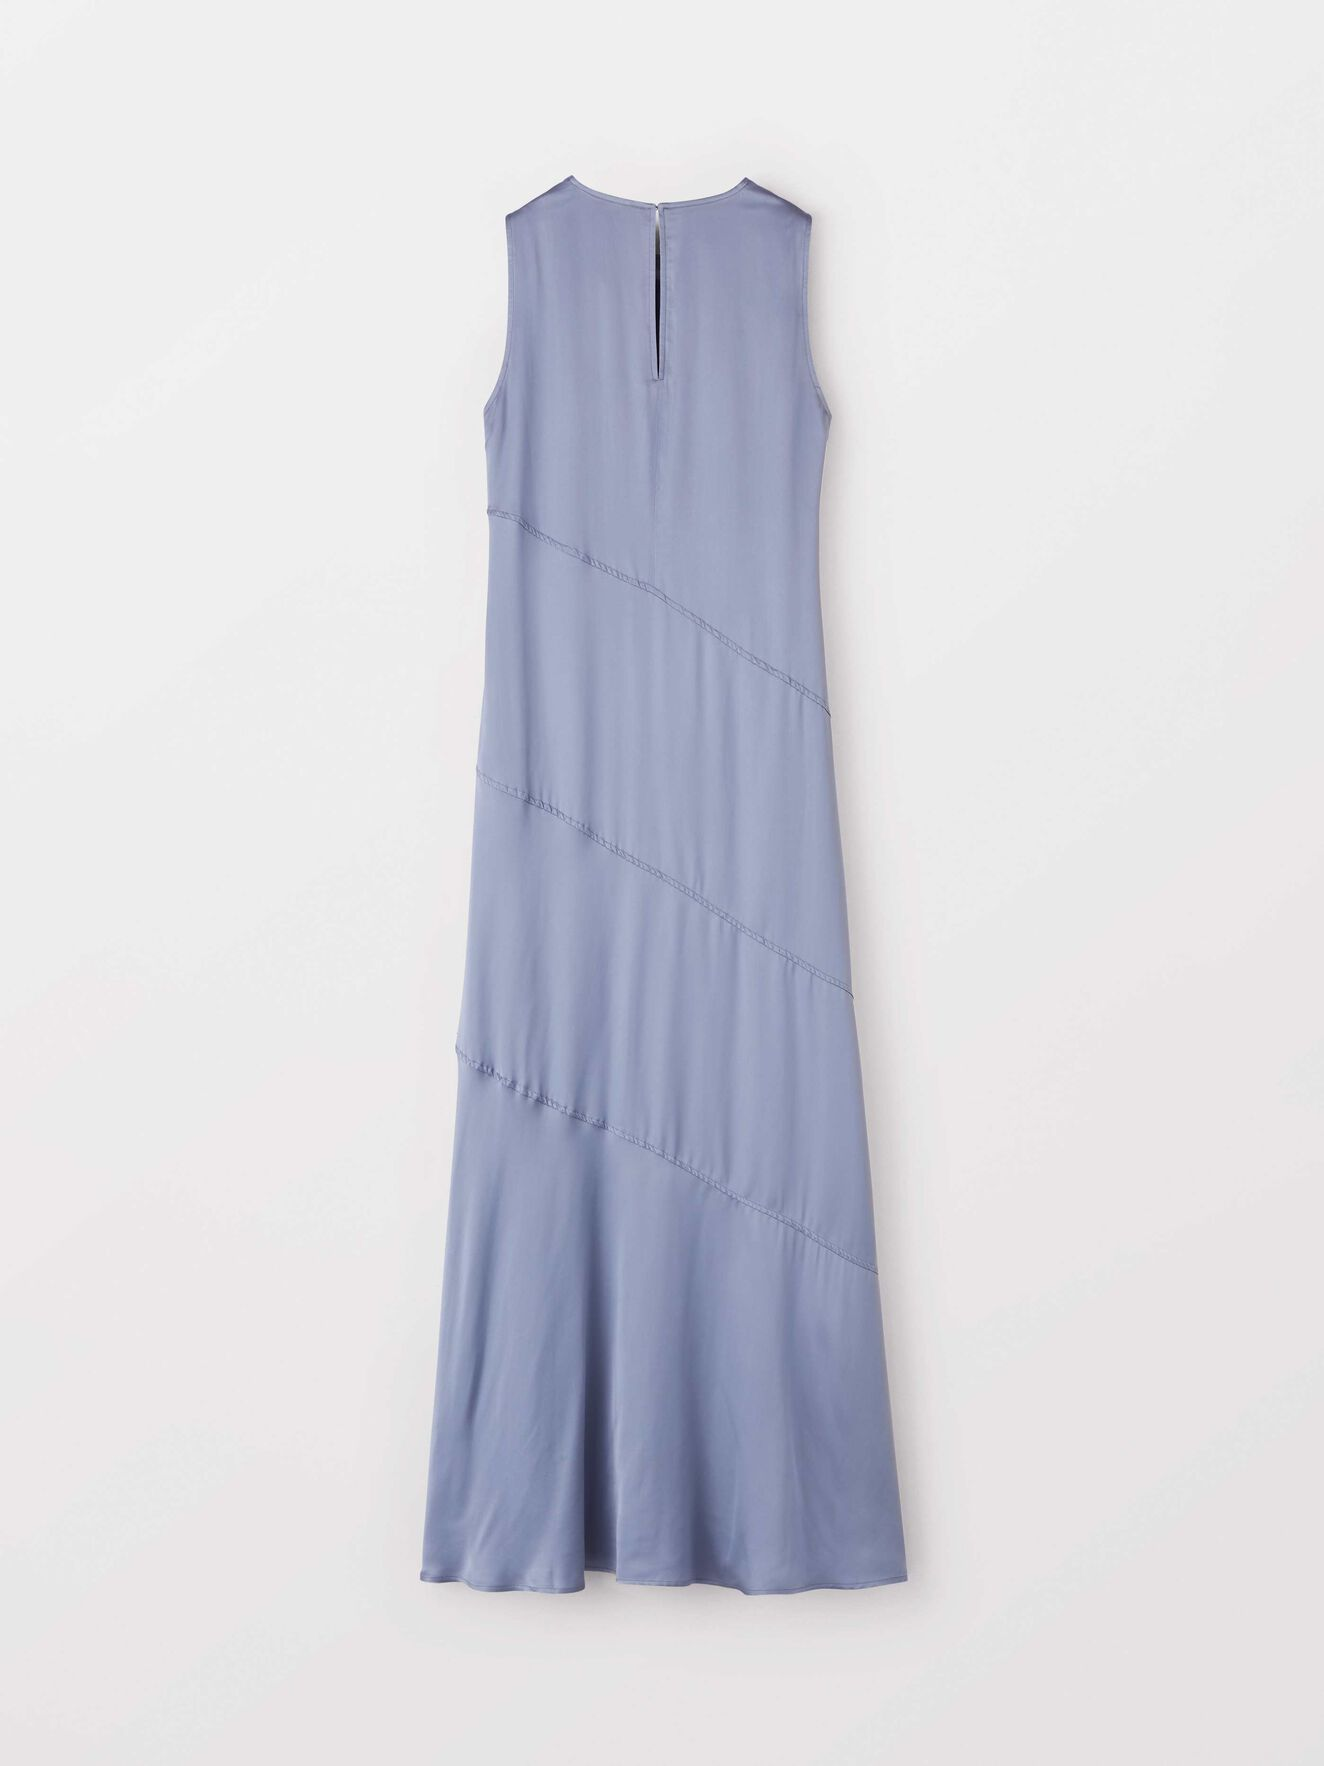 Kungsan Dress in Soft blue from Tiger of Sweden